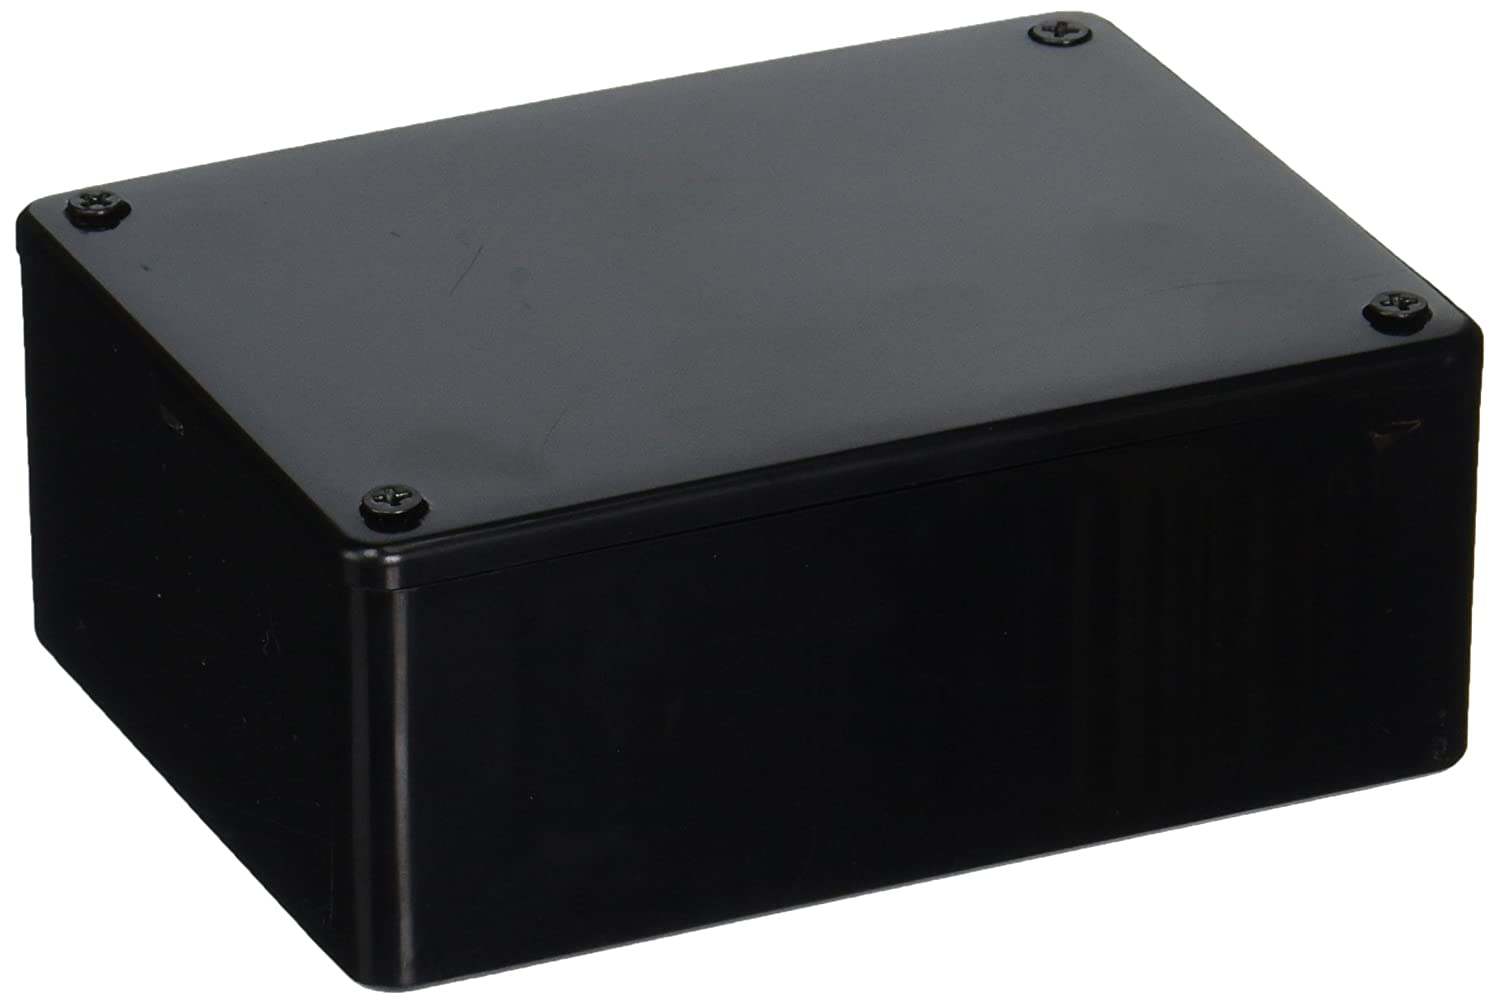 HAMMOND 1591SSBK ENCLOSURE MULTIPURPOSE ABS BLACK 1 piece